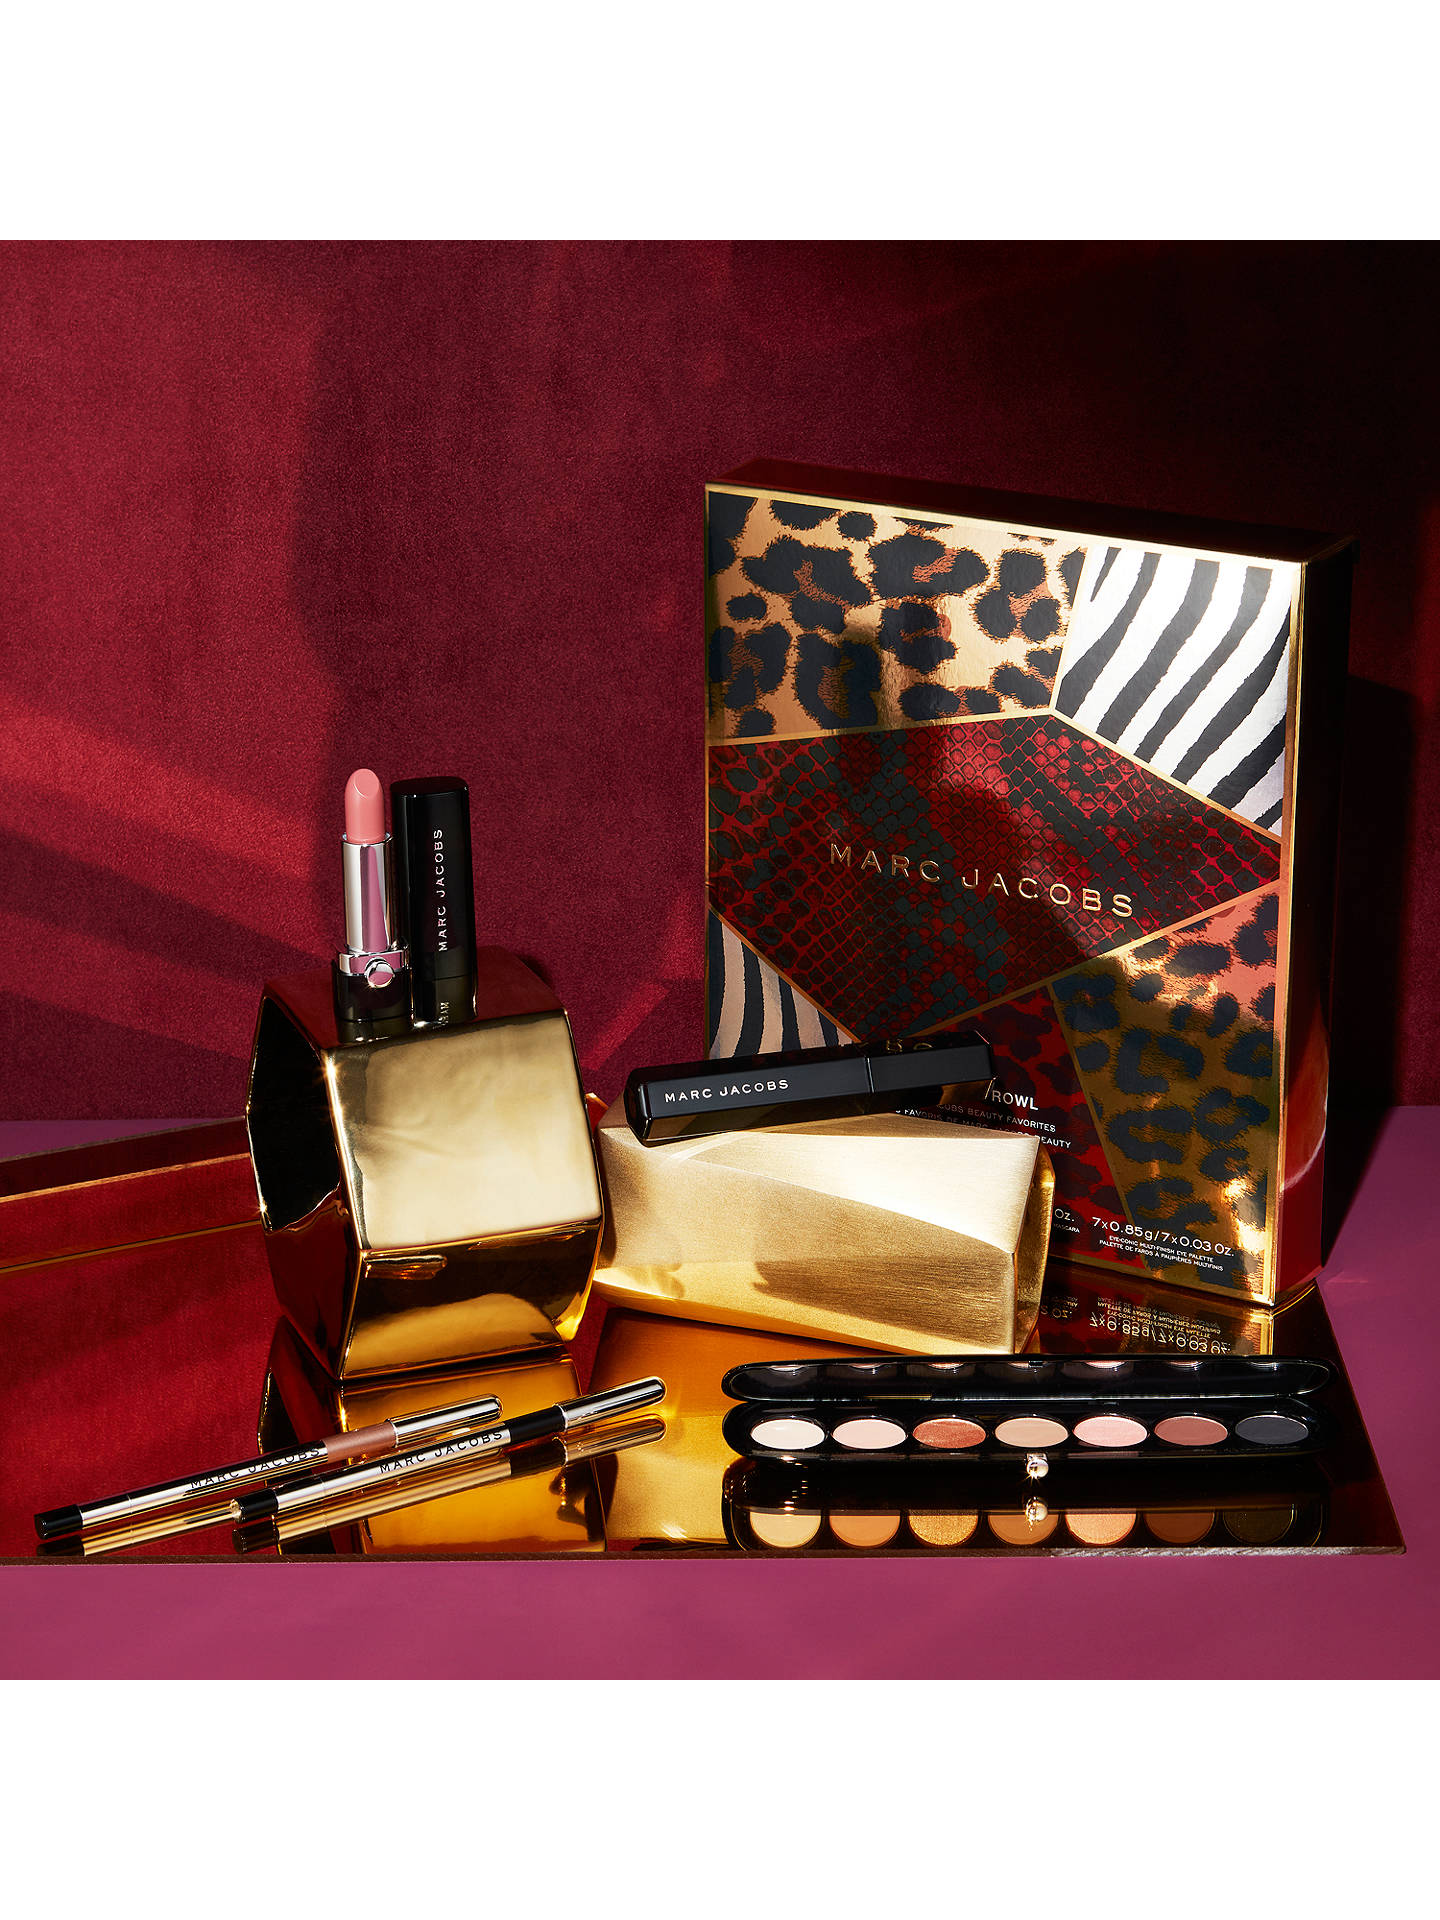 BuyMarc Jacobs 'On The Prowl' Makeup Gift Set Online at johnlewis.com